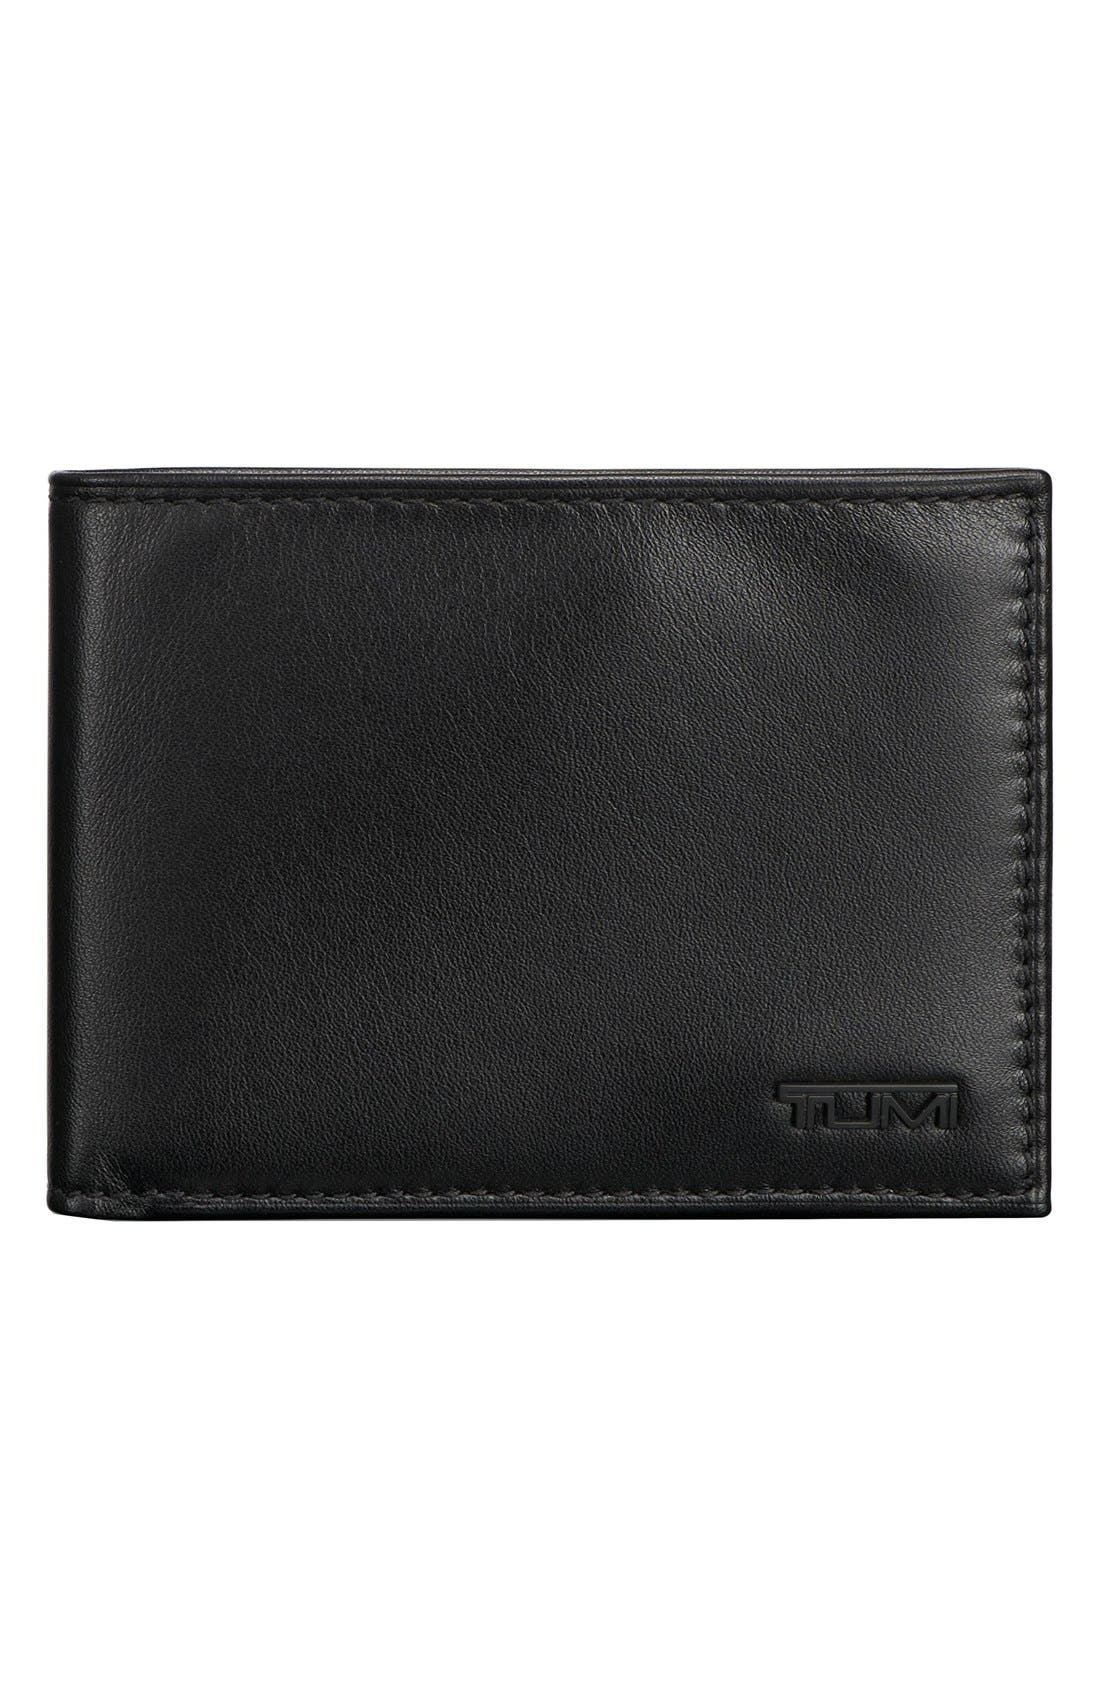 Main Image - Tumi Delta Double ID Lock™ Shielded Leather Wallet